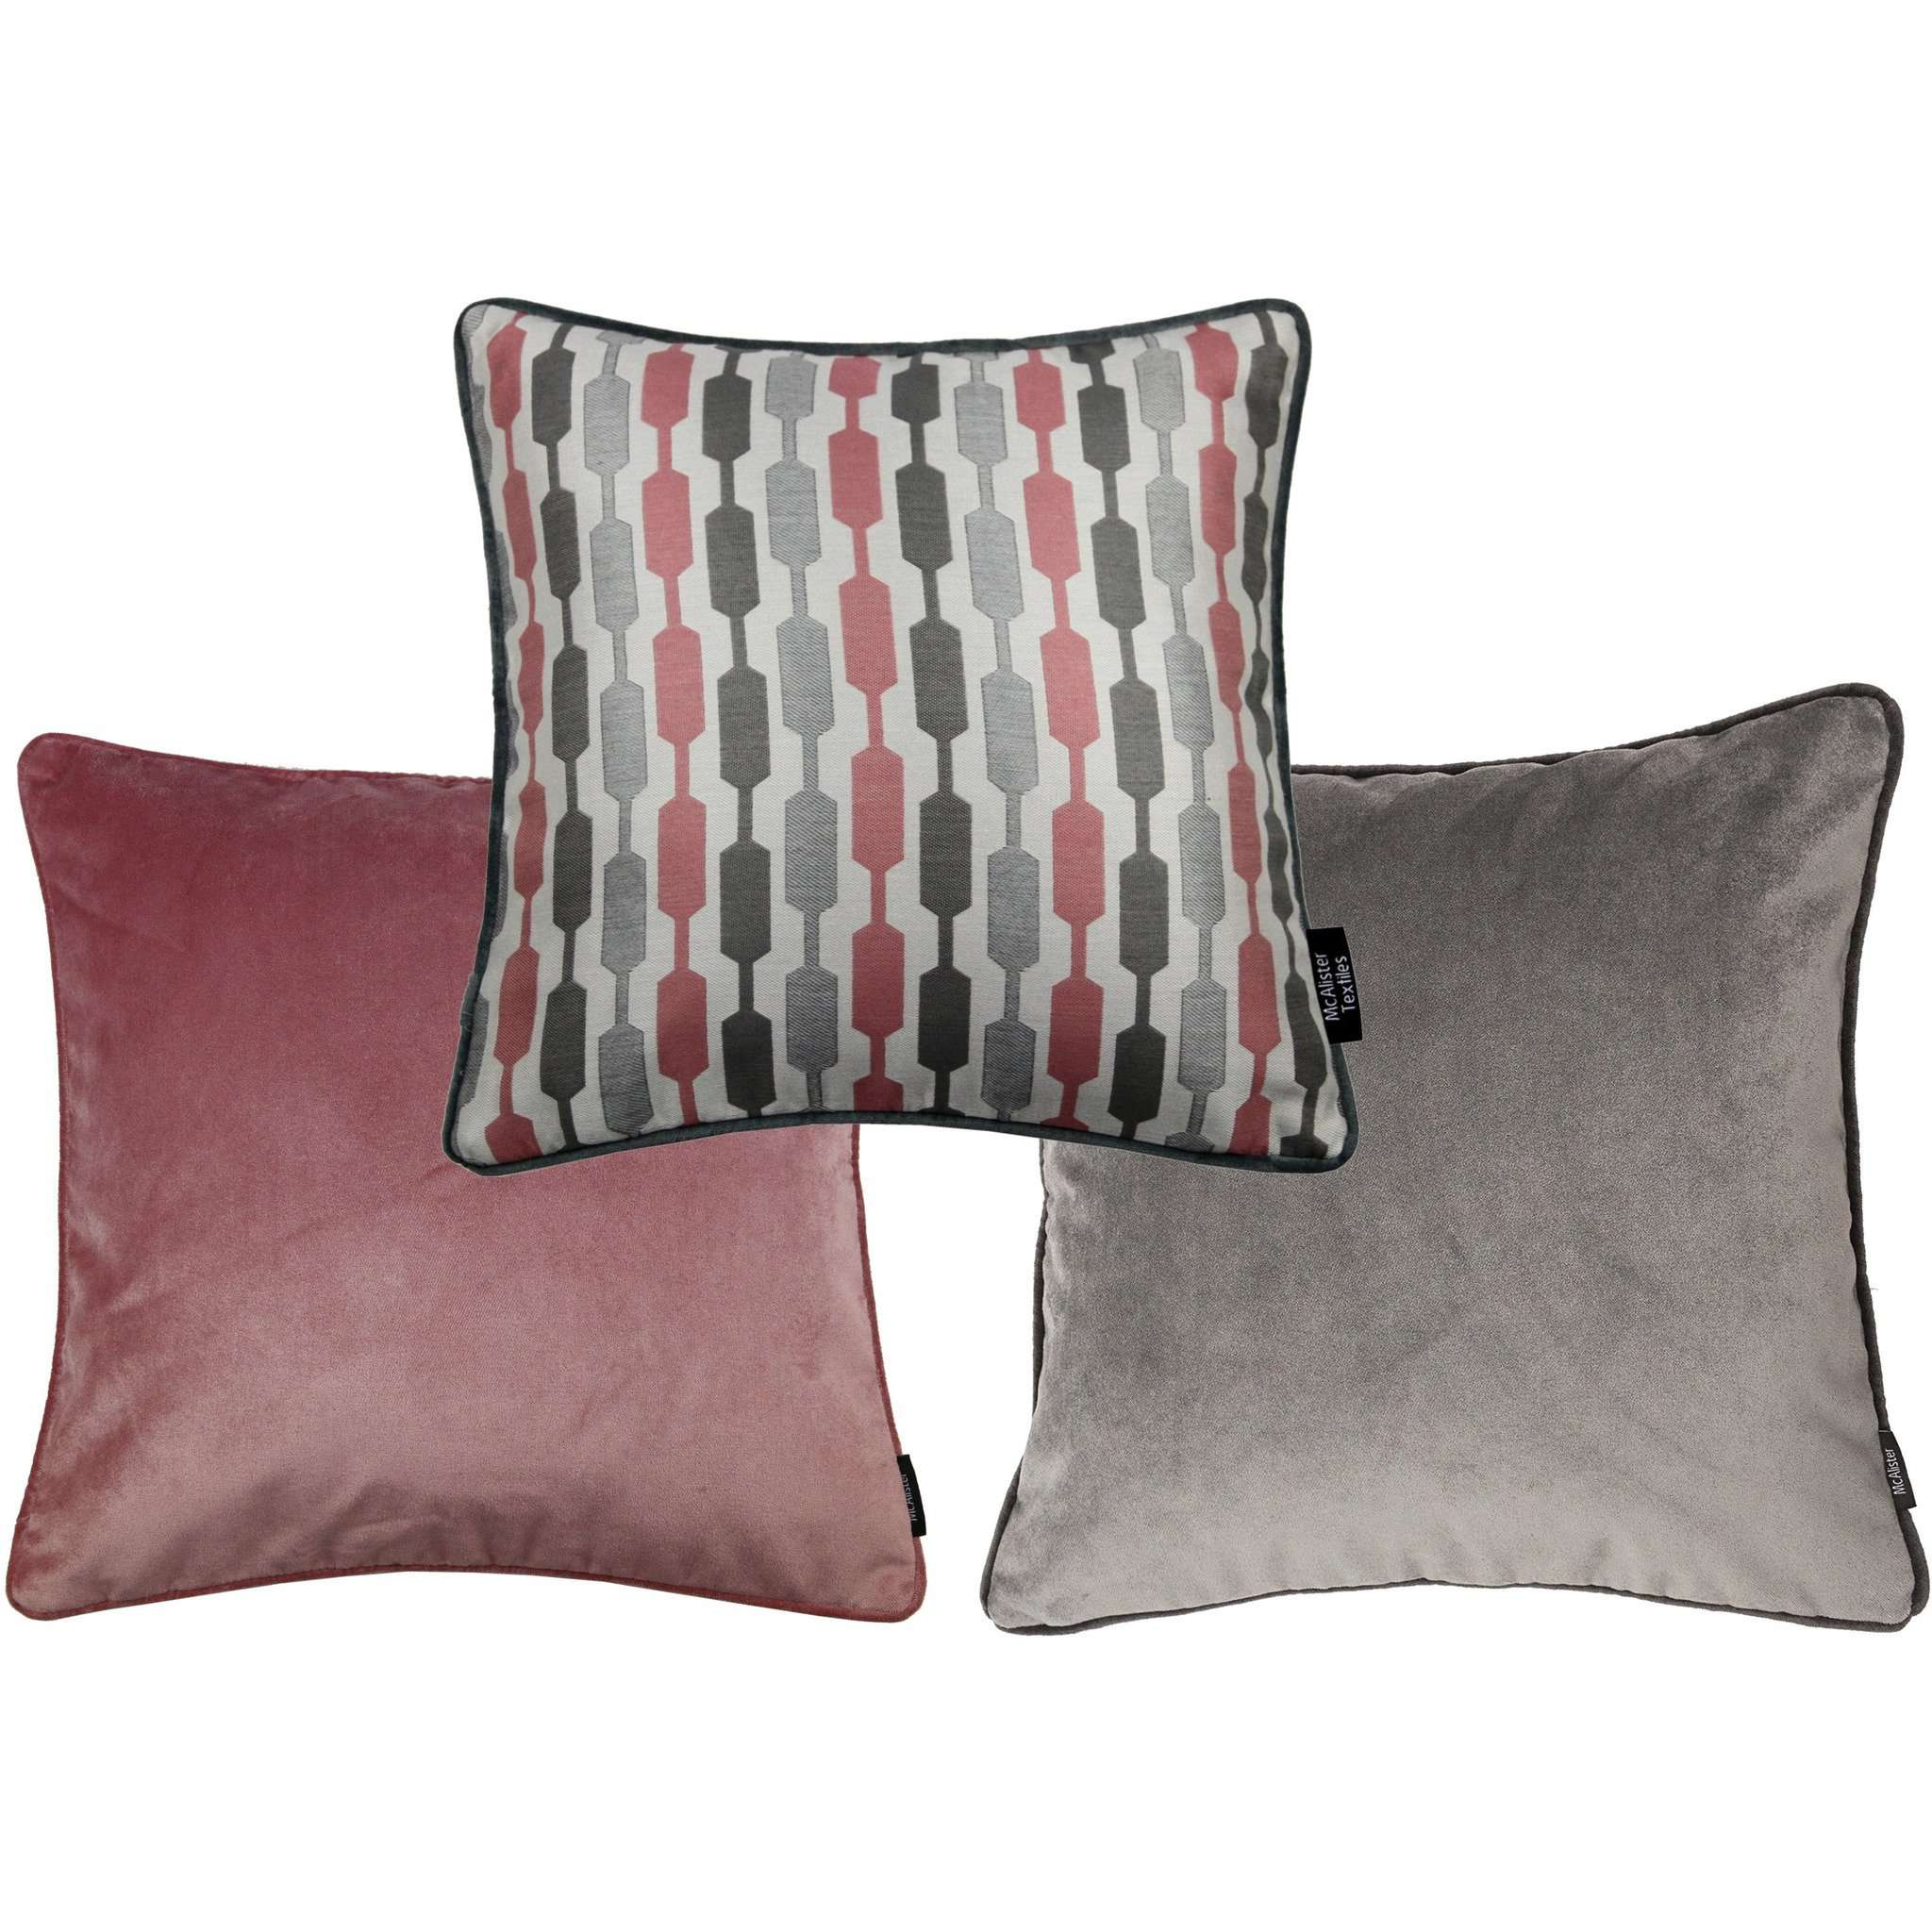 McAlister Textiles Blush Pink Geometric and Plain Velvet 43cm x 43cm Cushion Set of 3 Cushions and Covers Cushion Cover